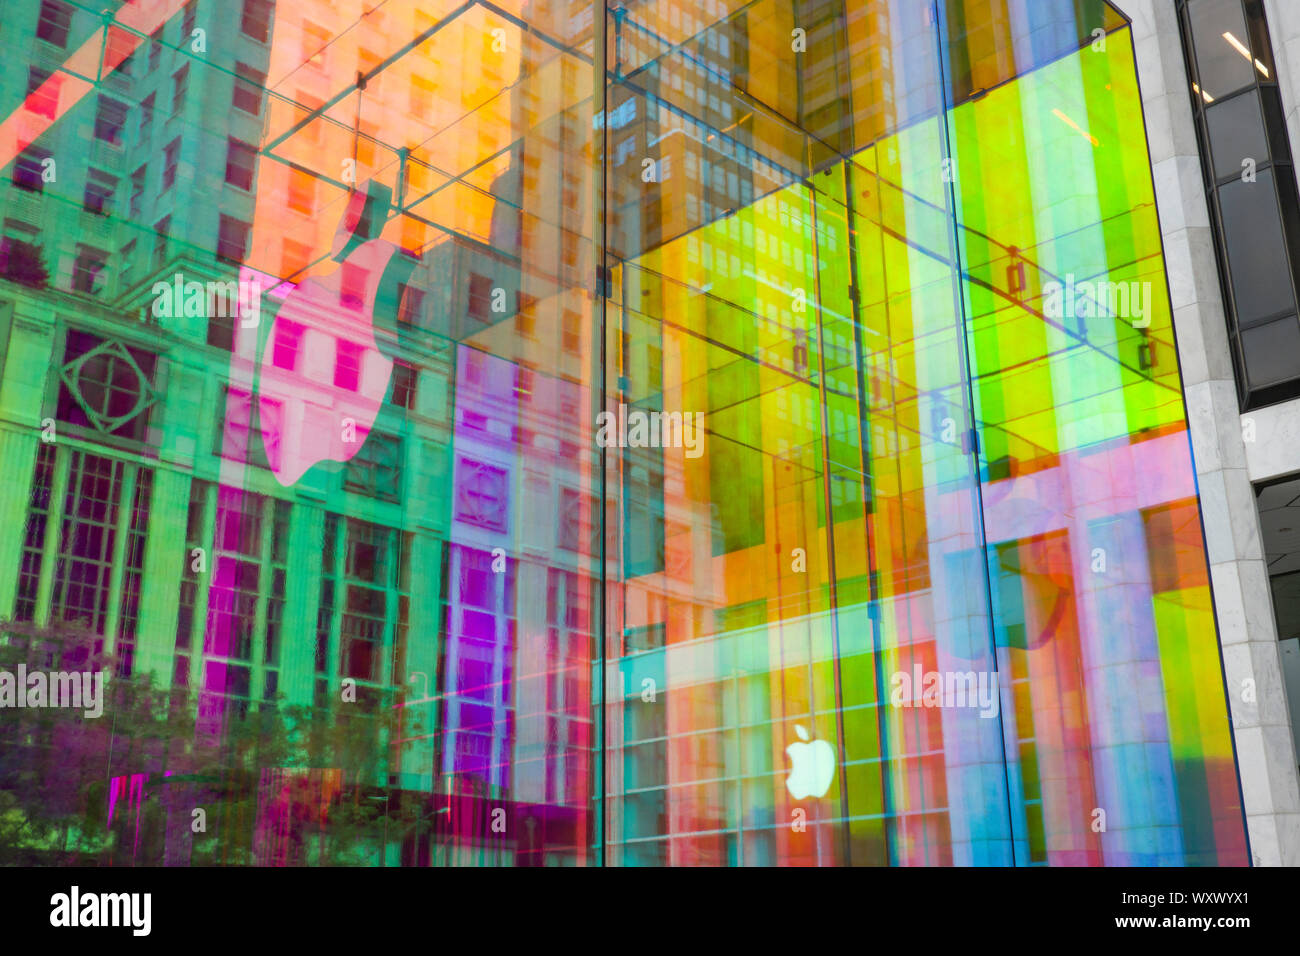 The iconic Apple store glass cube is in a temporary iridescent wrap, Fifth Avenue, NYC, USA Stock Photo